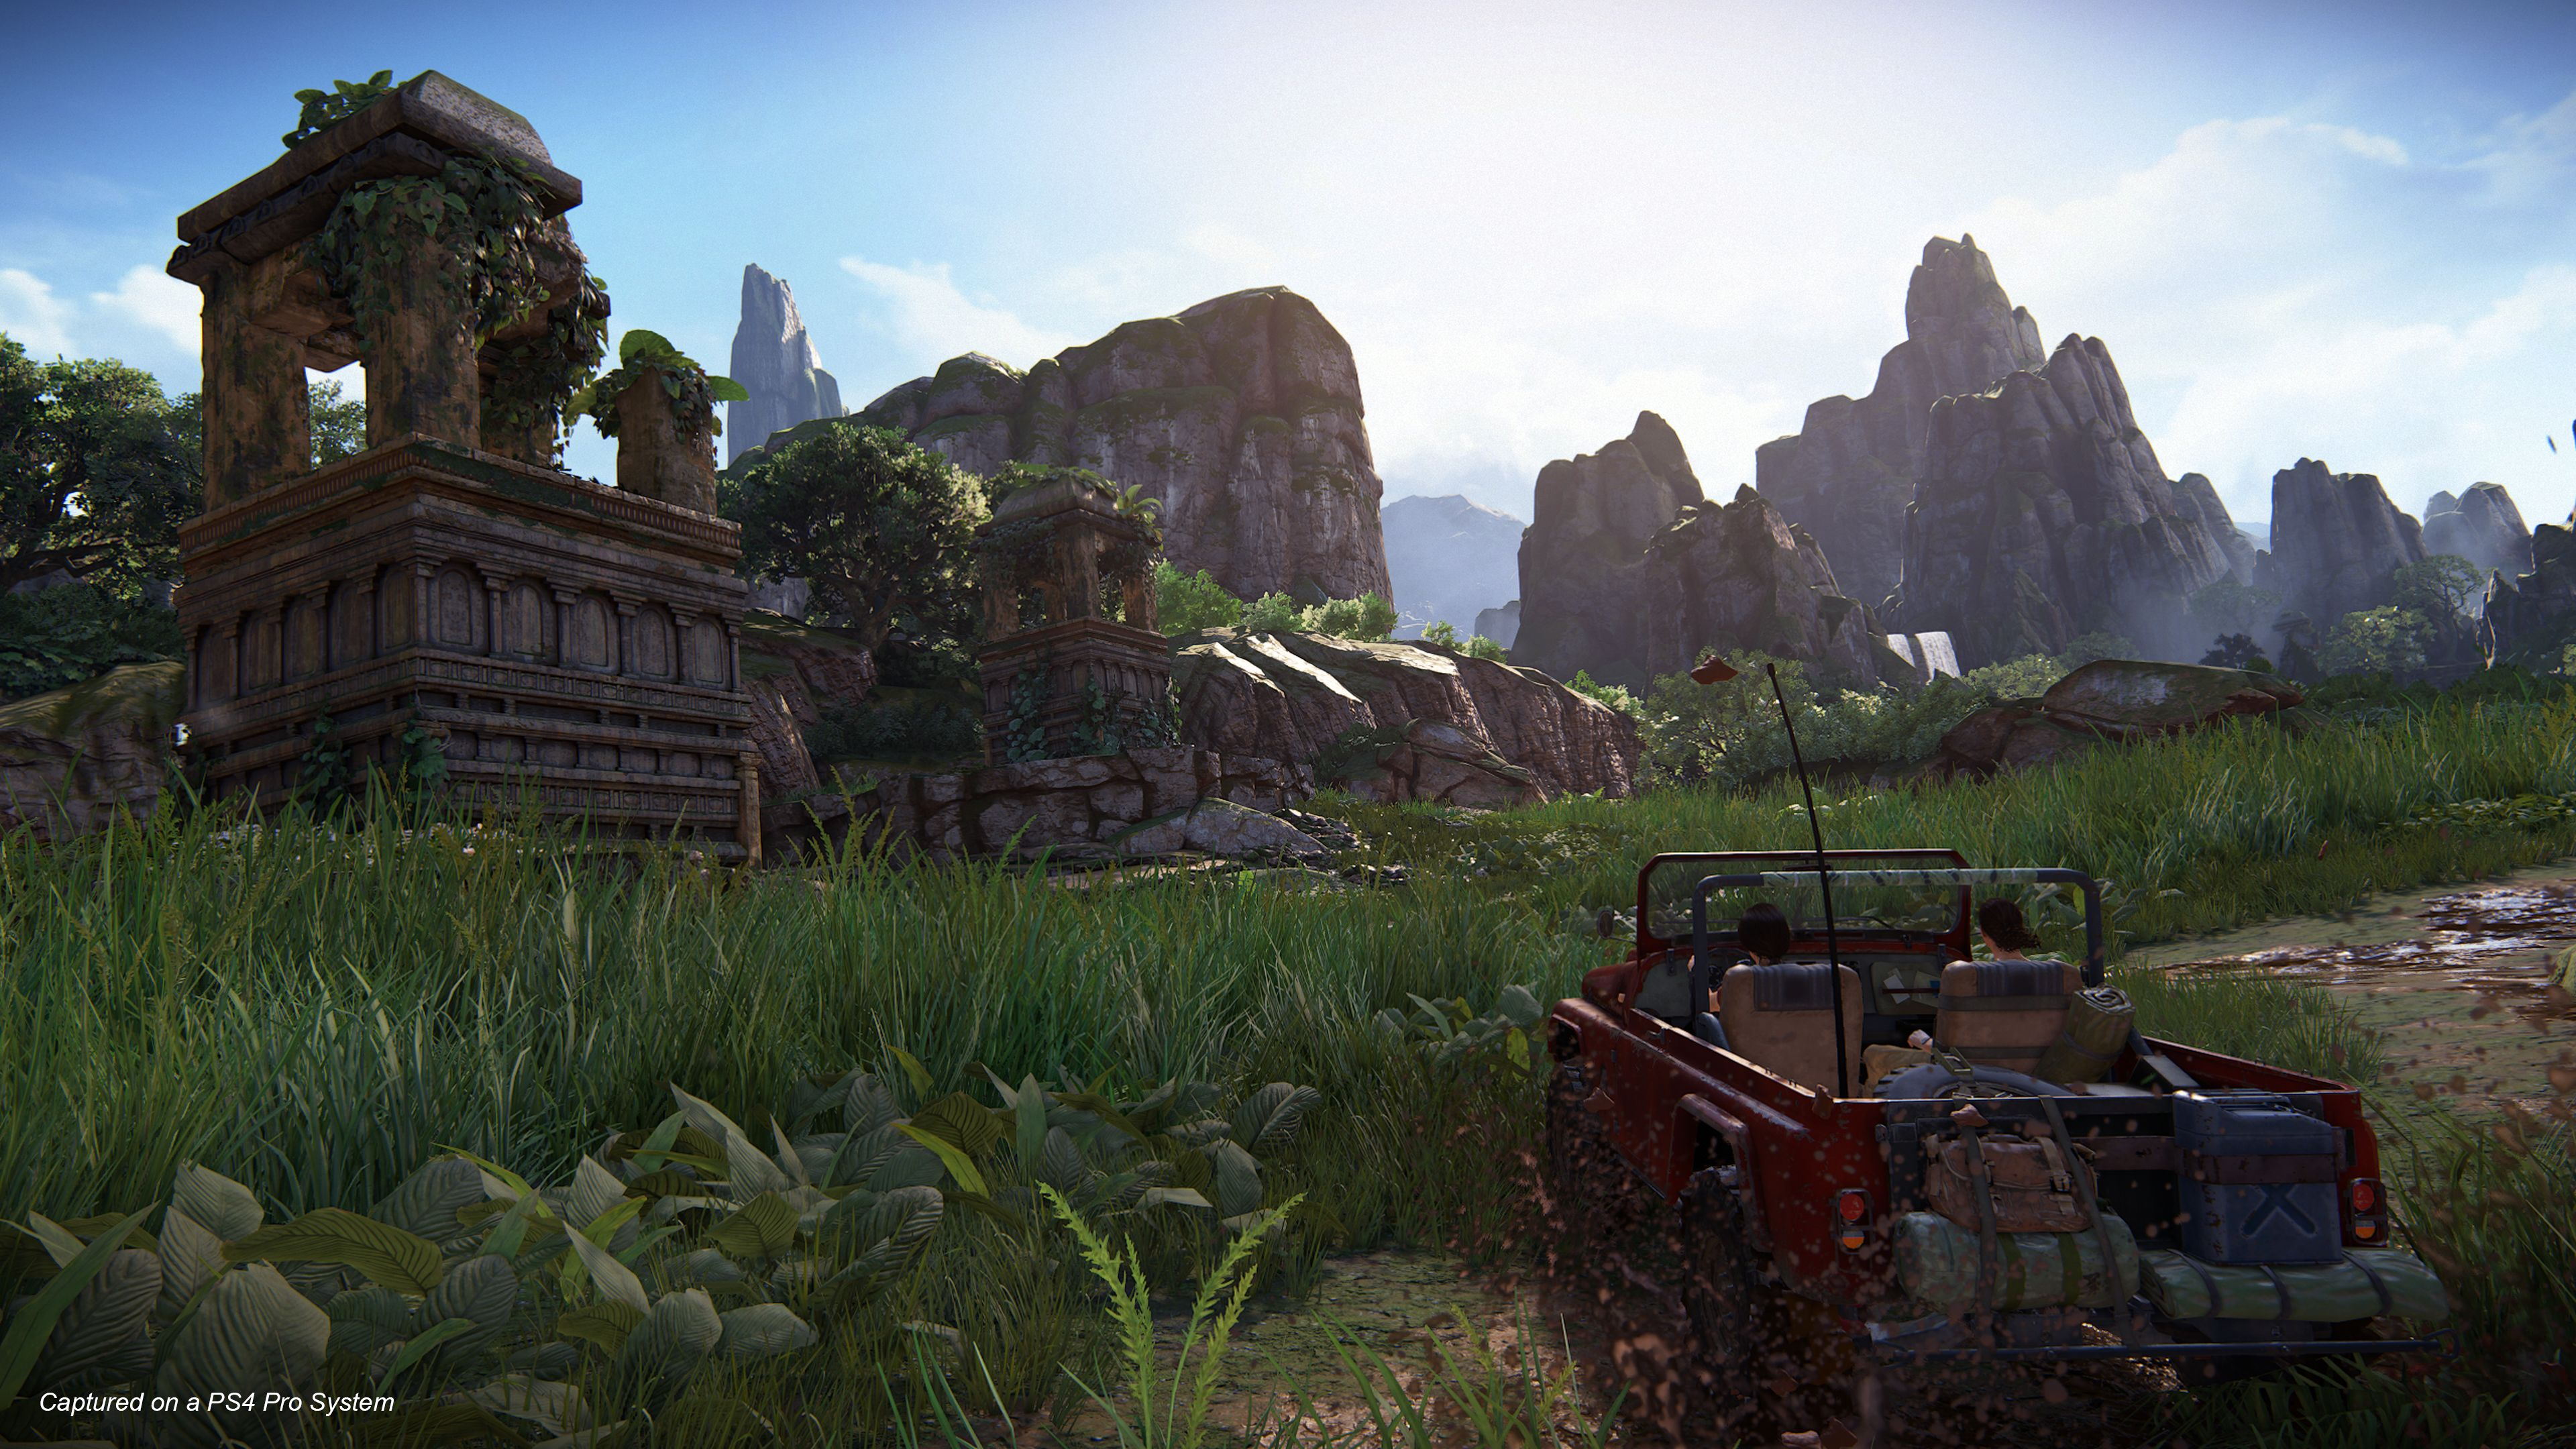 833688-uncharted-the-lost-legacy-3840x2160.jpg